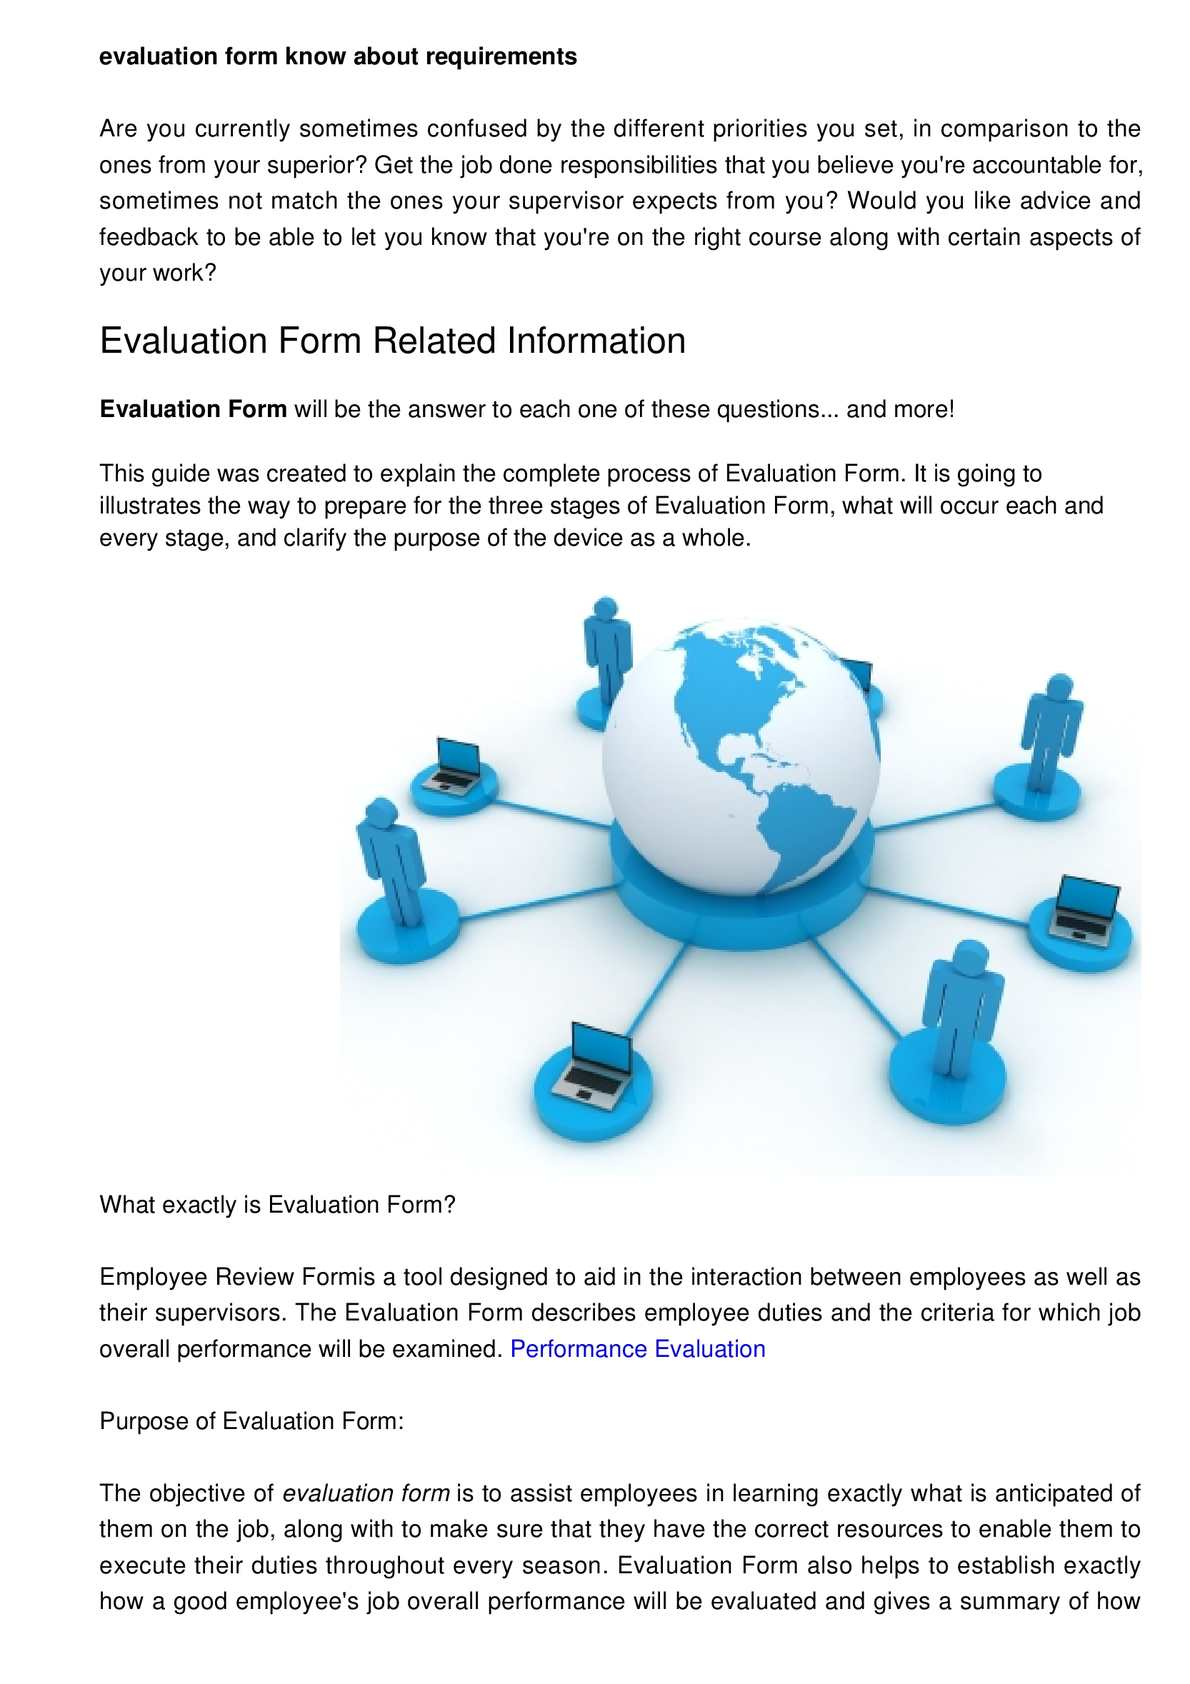 calamo evaluation form know about conditions for becoming successful - What Is Evaluation Form